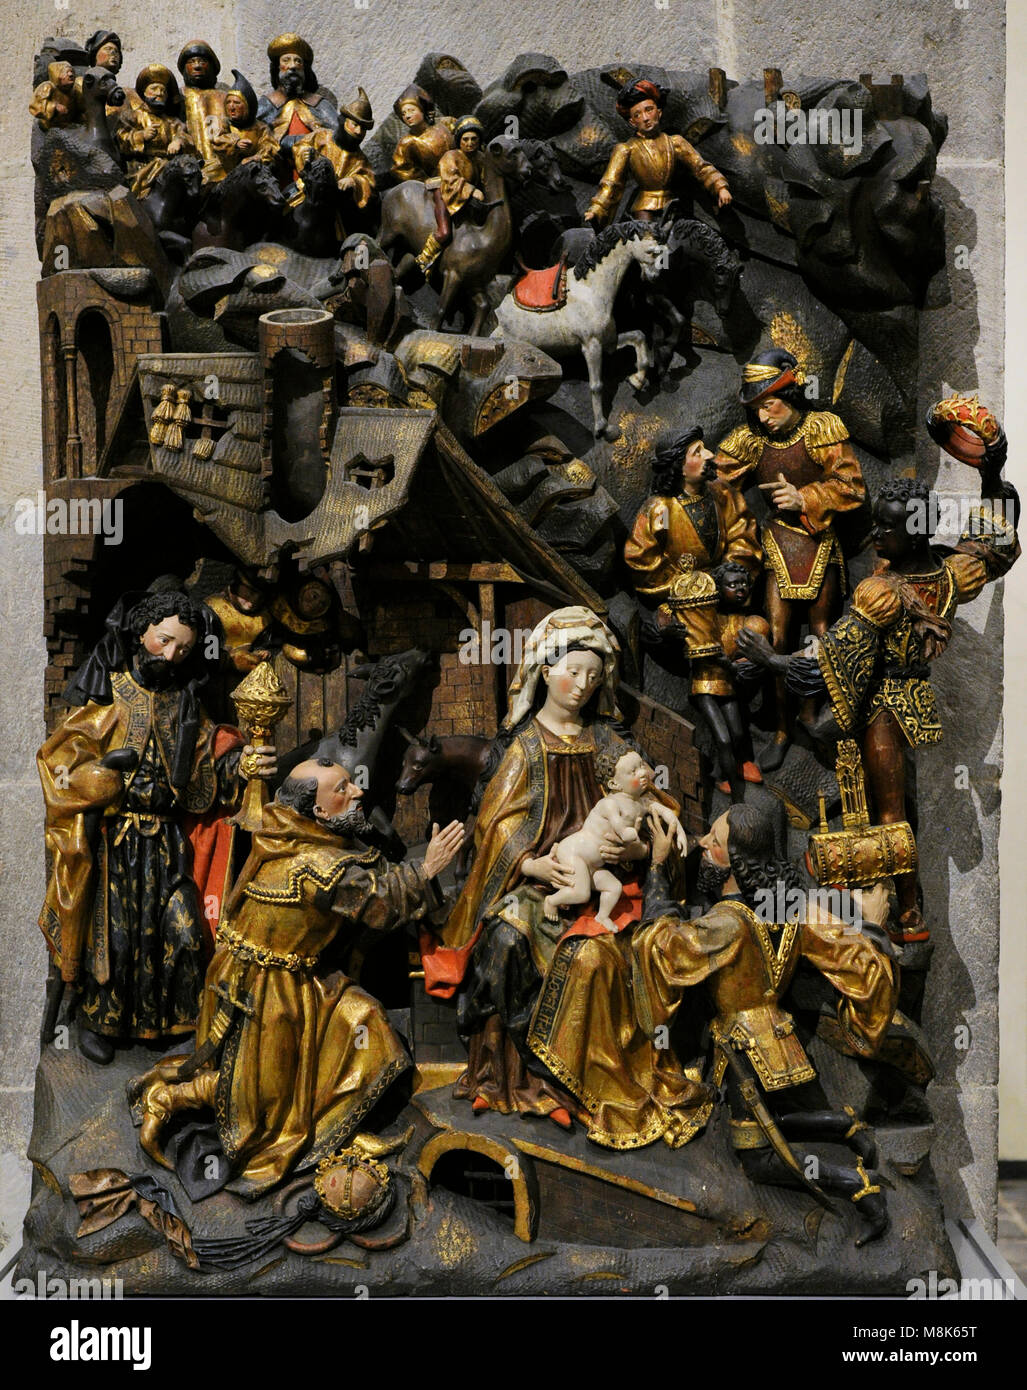 Adoration of the Magi. Master Arnt of Kalkar and Zwolle, Lower Rhine, Germany, 1480-1485. Oak, polychrome. Museum - Stock Image